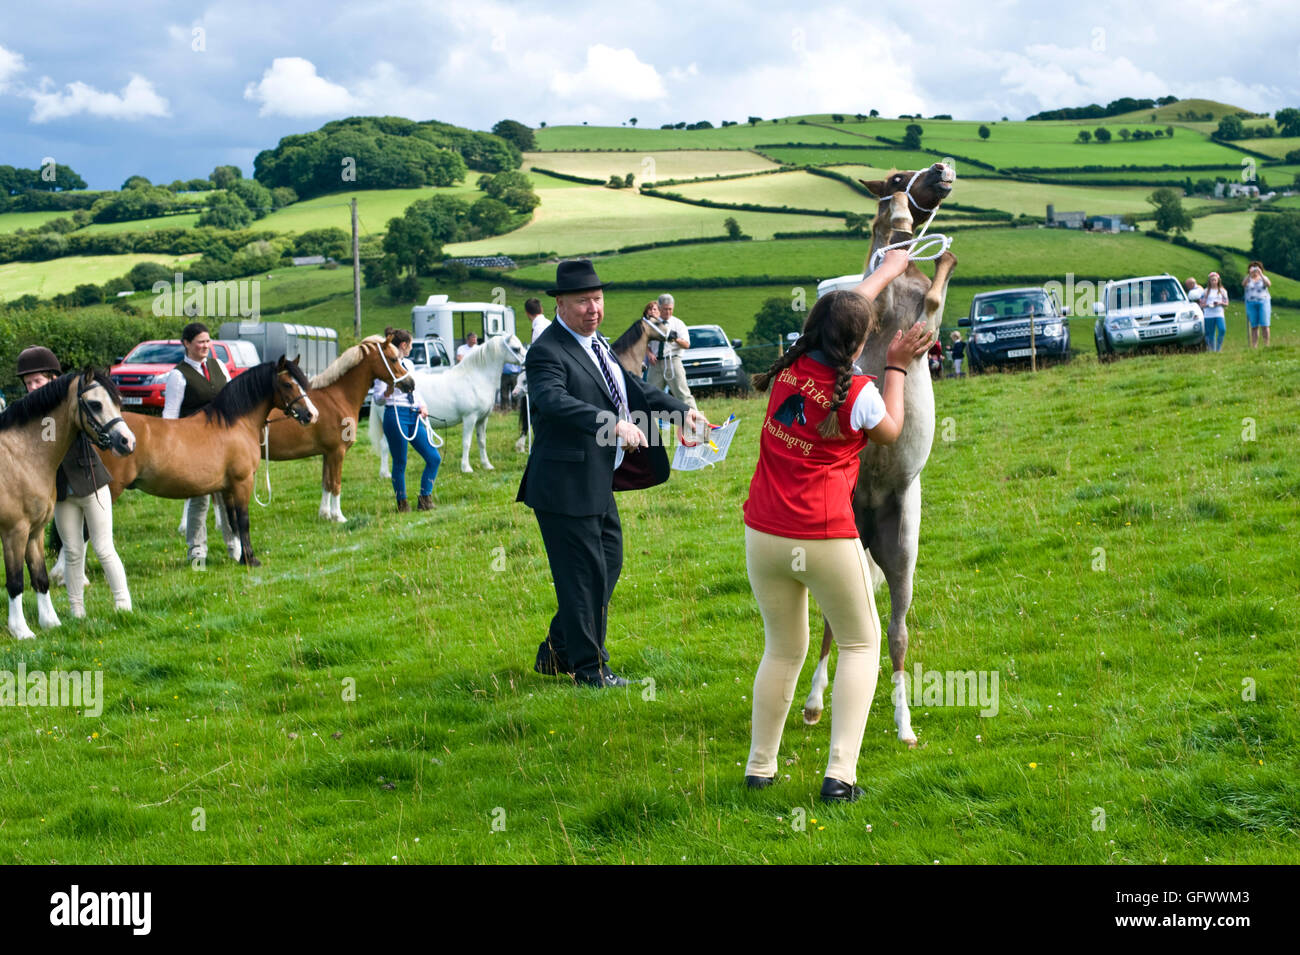 Judging of Welsh Mountain Ponies at Gwenddwr Show, Gwenddwr, near Builth Wells, Powys, Wales, UK - Stock Image